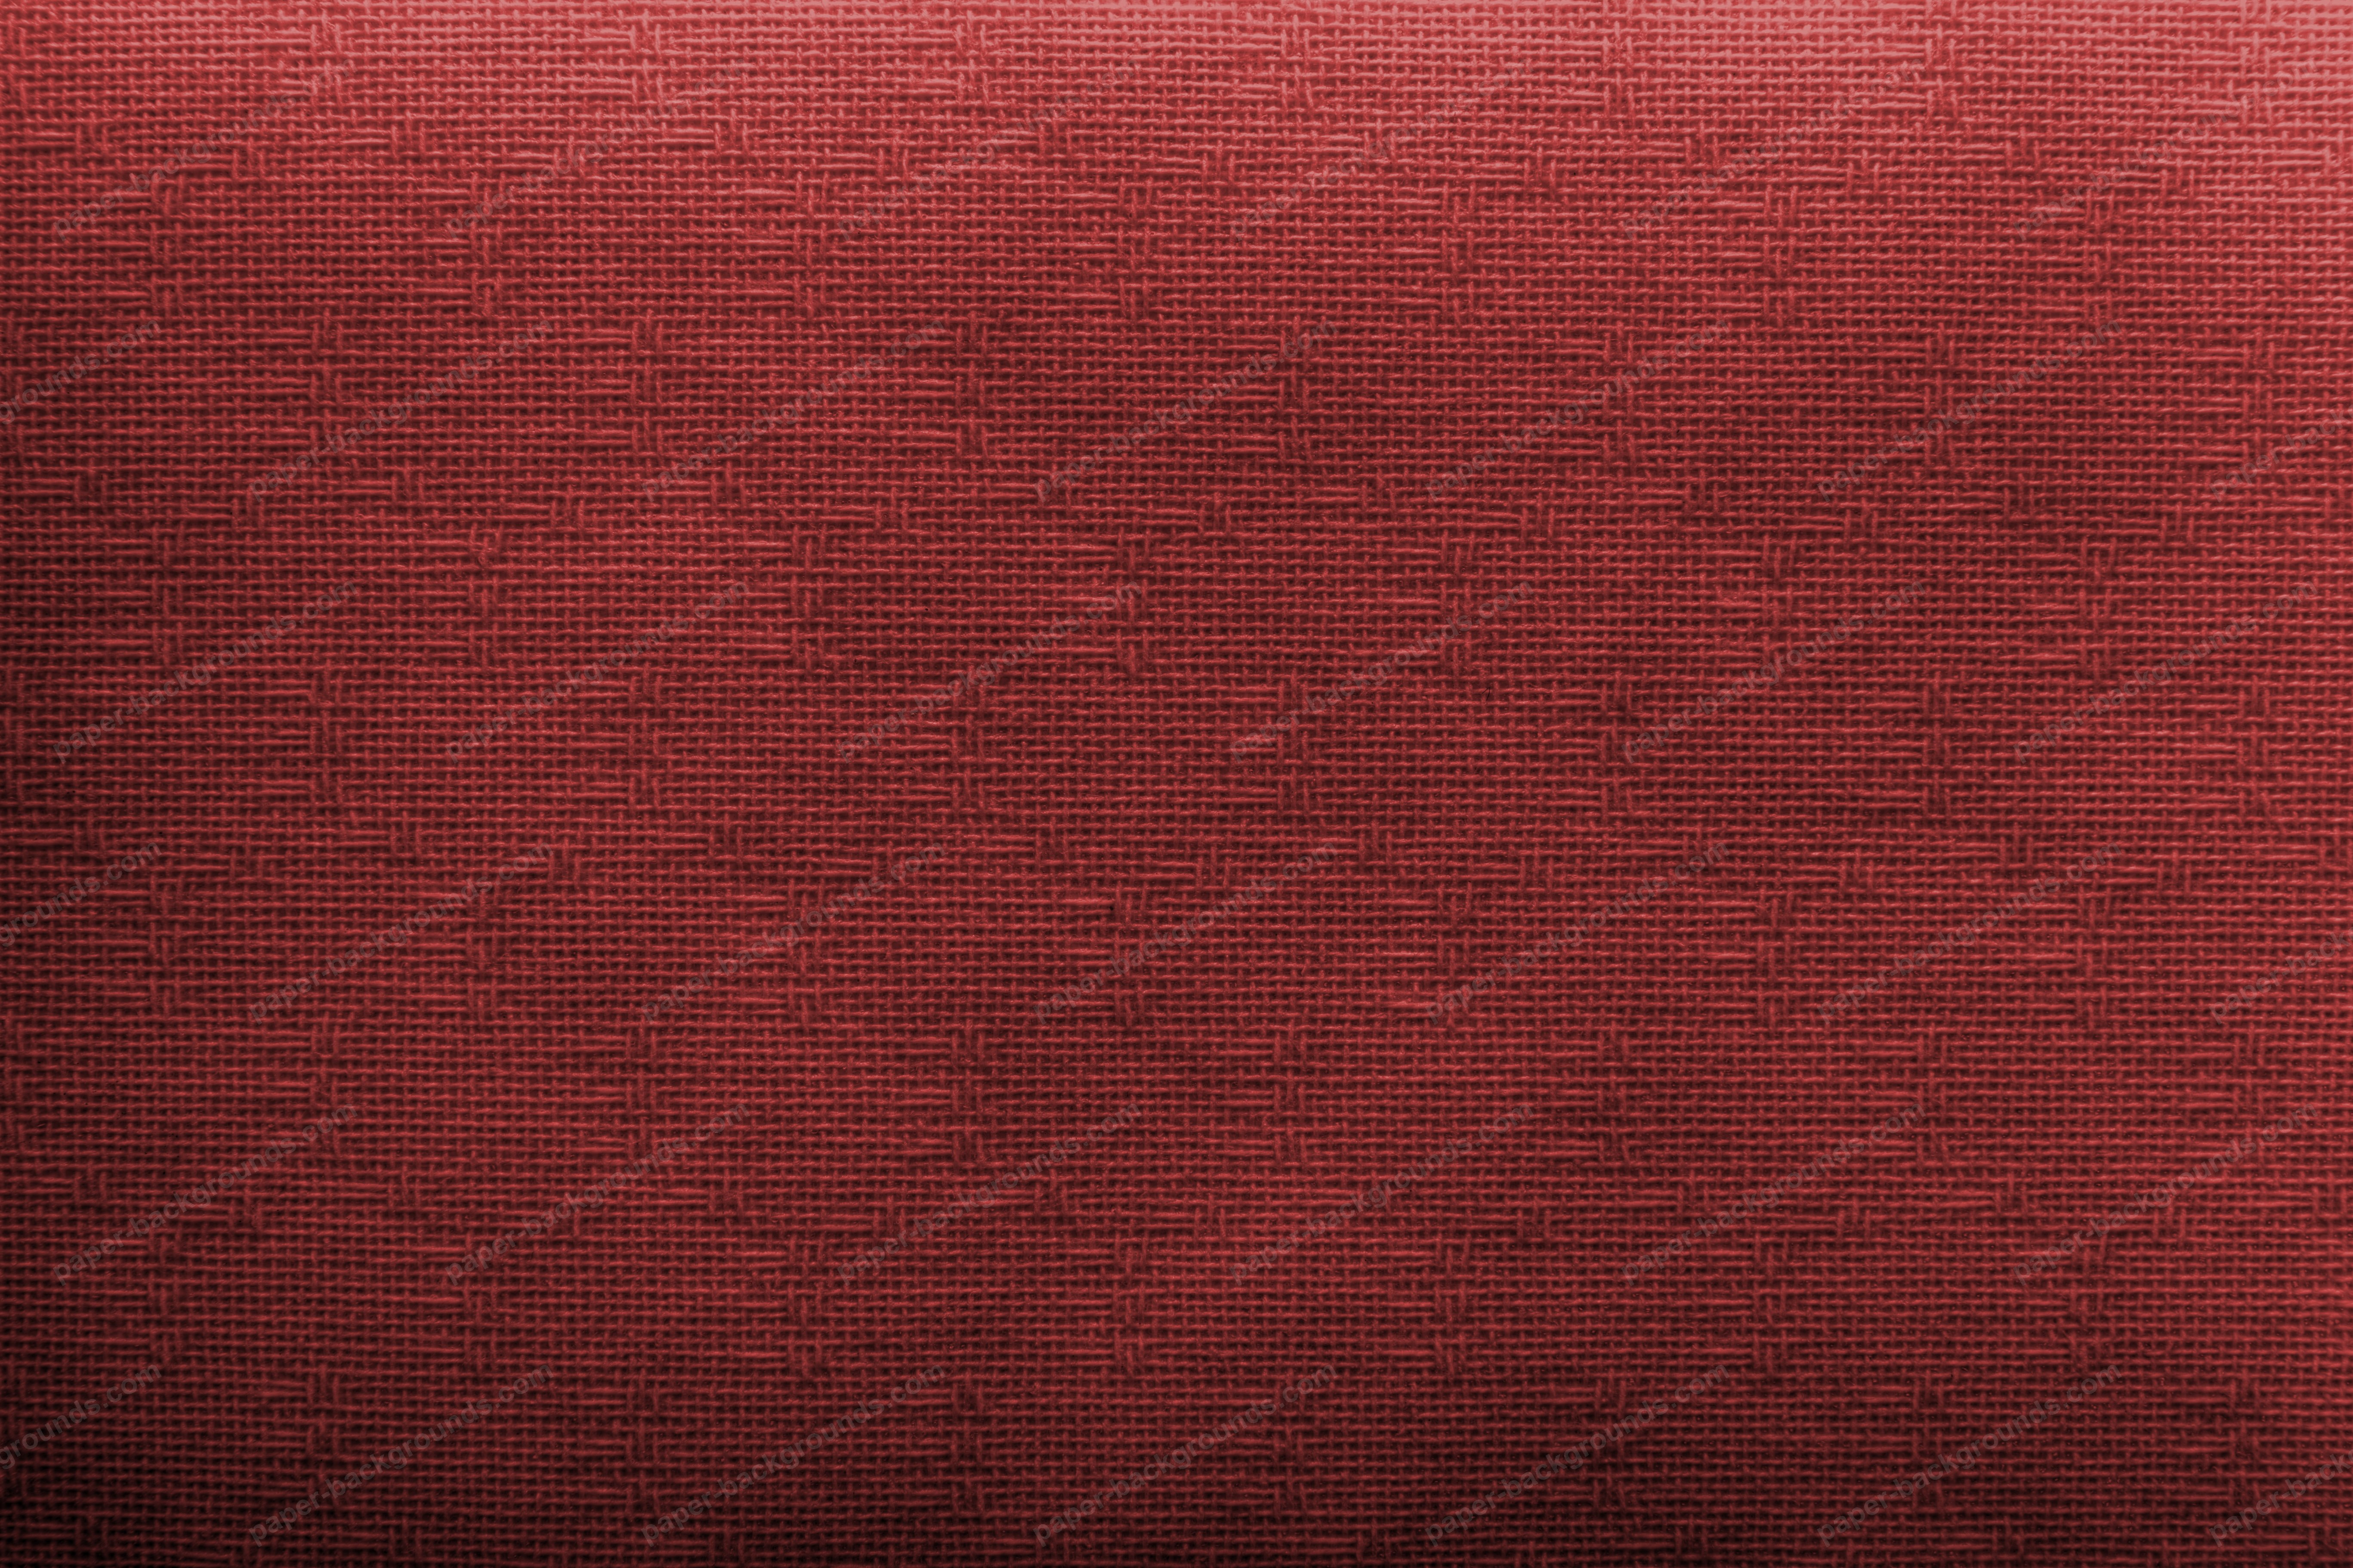 Red Canvas Texture Background High Resolution